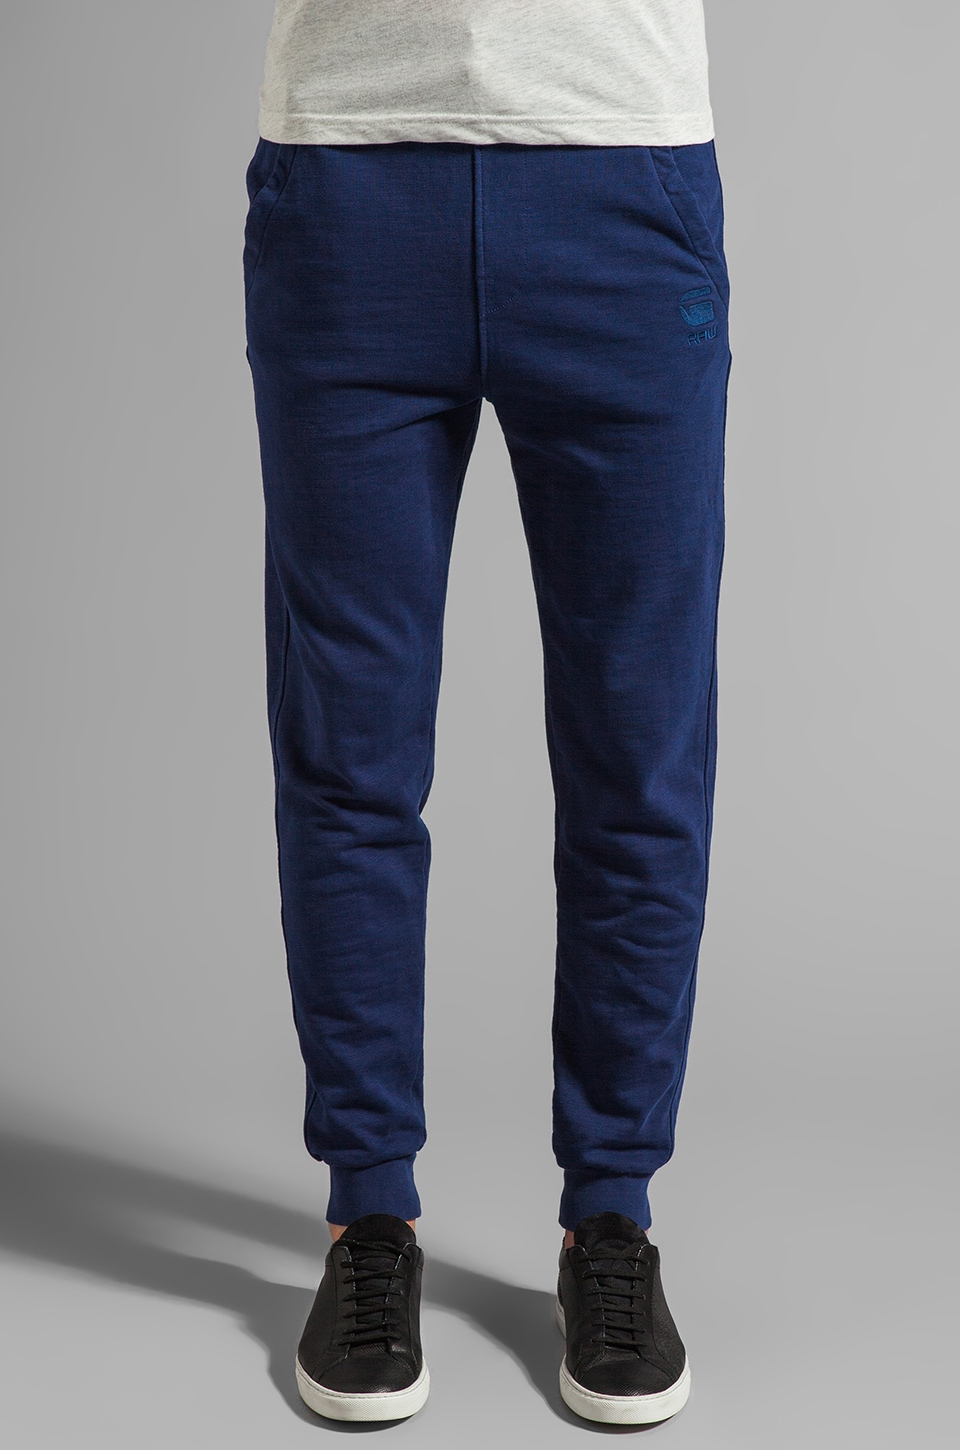 G-Star Correct Lens Sweatpant in Imperial